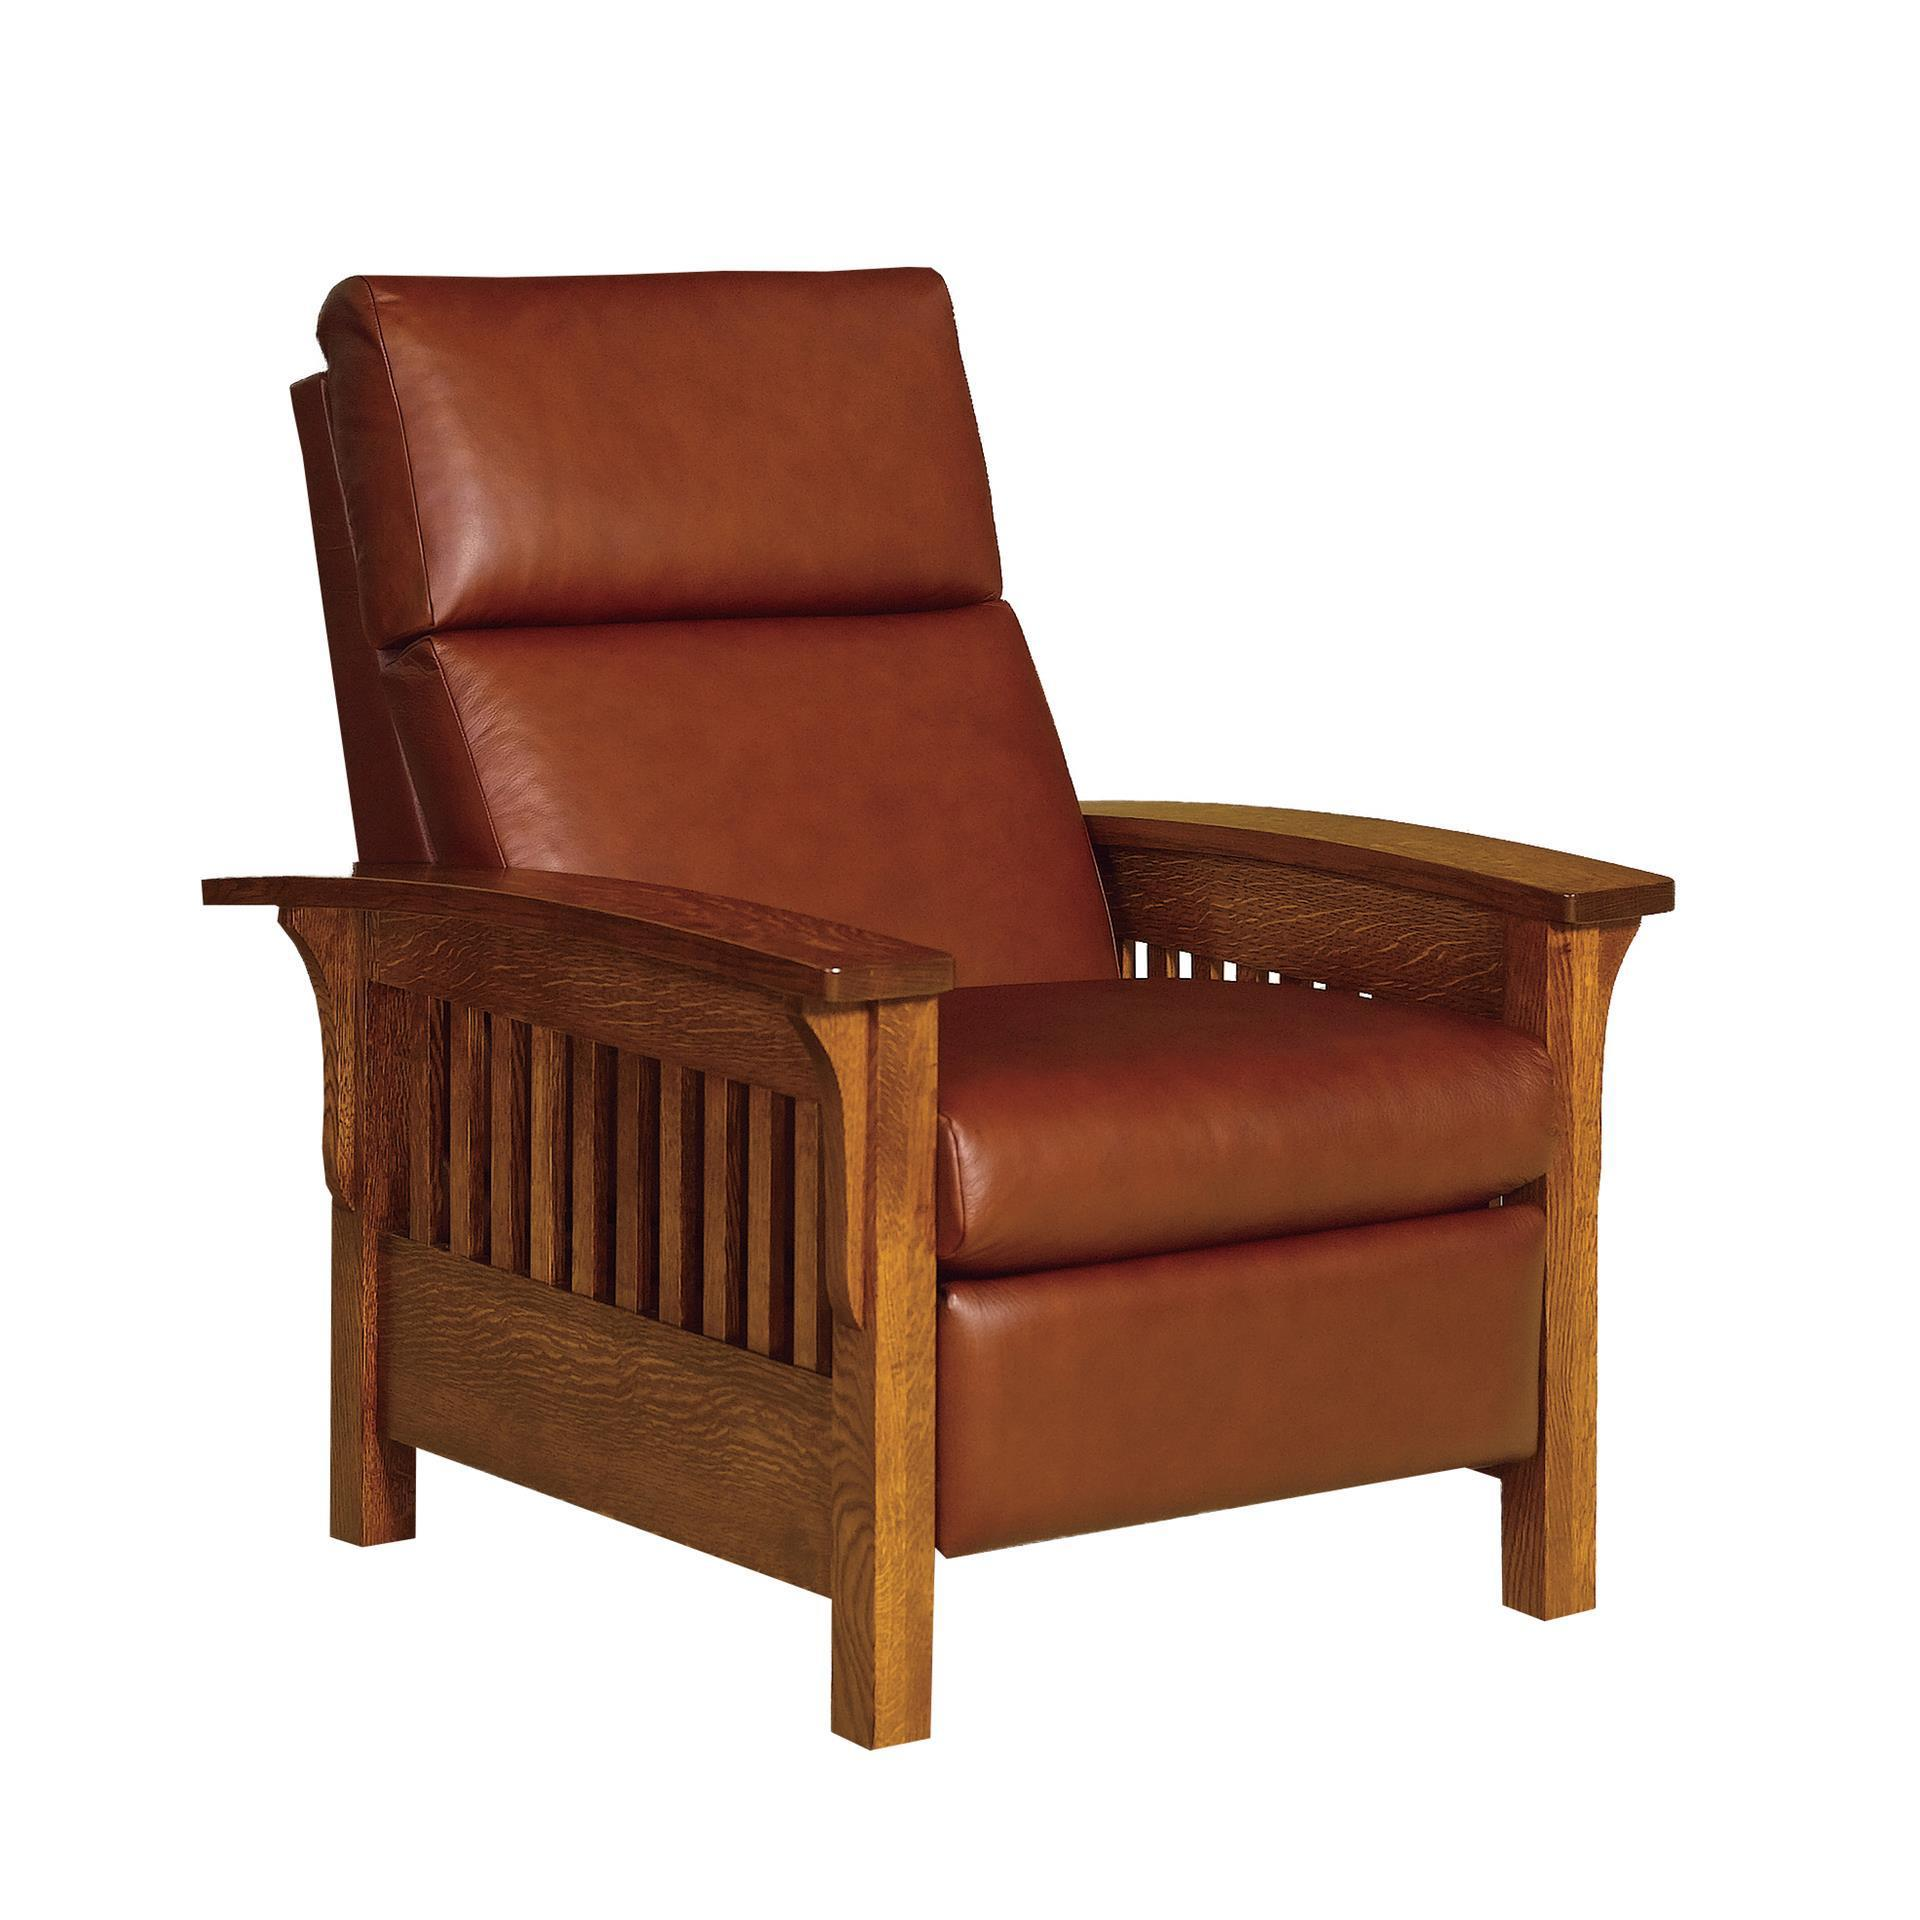 Heartland Slat Mission Recliner from DutchCrafters Amish Furniture